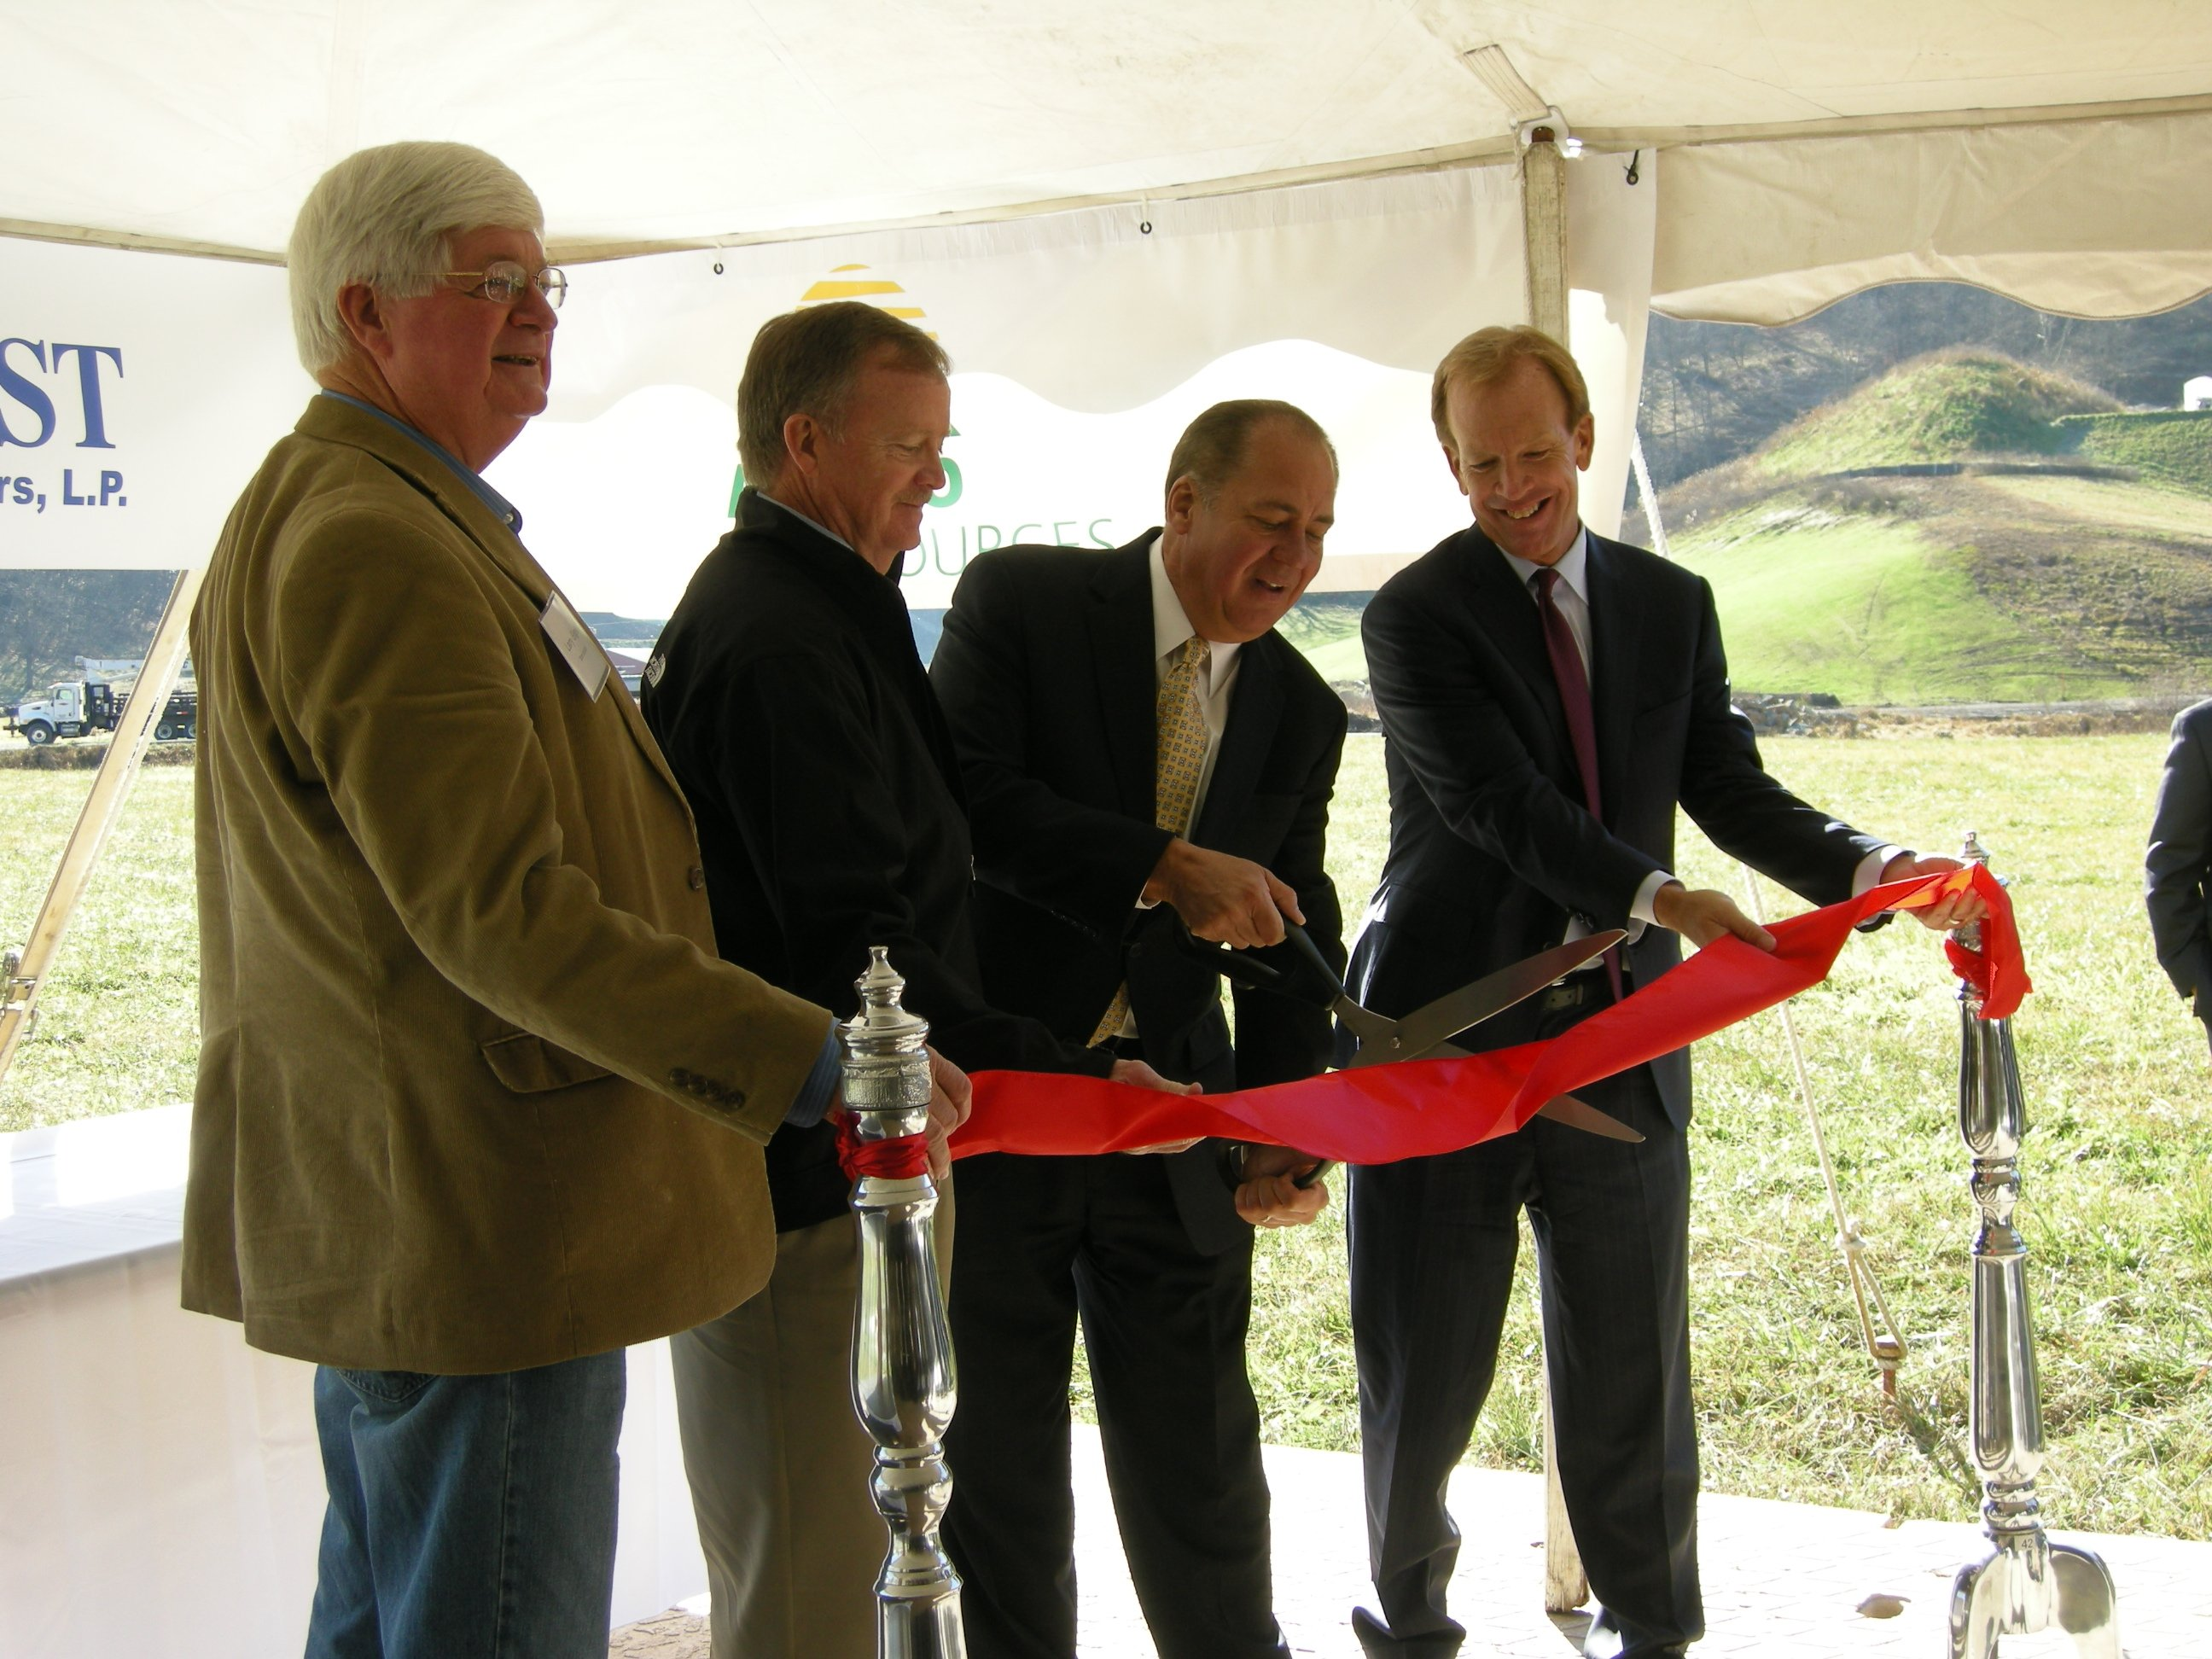 Sen. Larry Edgell, D-Wetzel, left, joined MarkWest Energy Partners CEO Frank Semple, Gov. Earl Ray Tomblin and Antero Resources CEO Paul Rady at the Dec. 6 Sherwood I ribbon cutting in Doddridge Co.